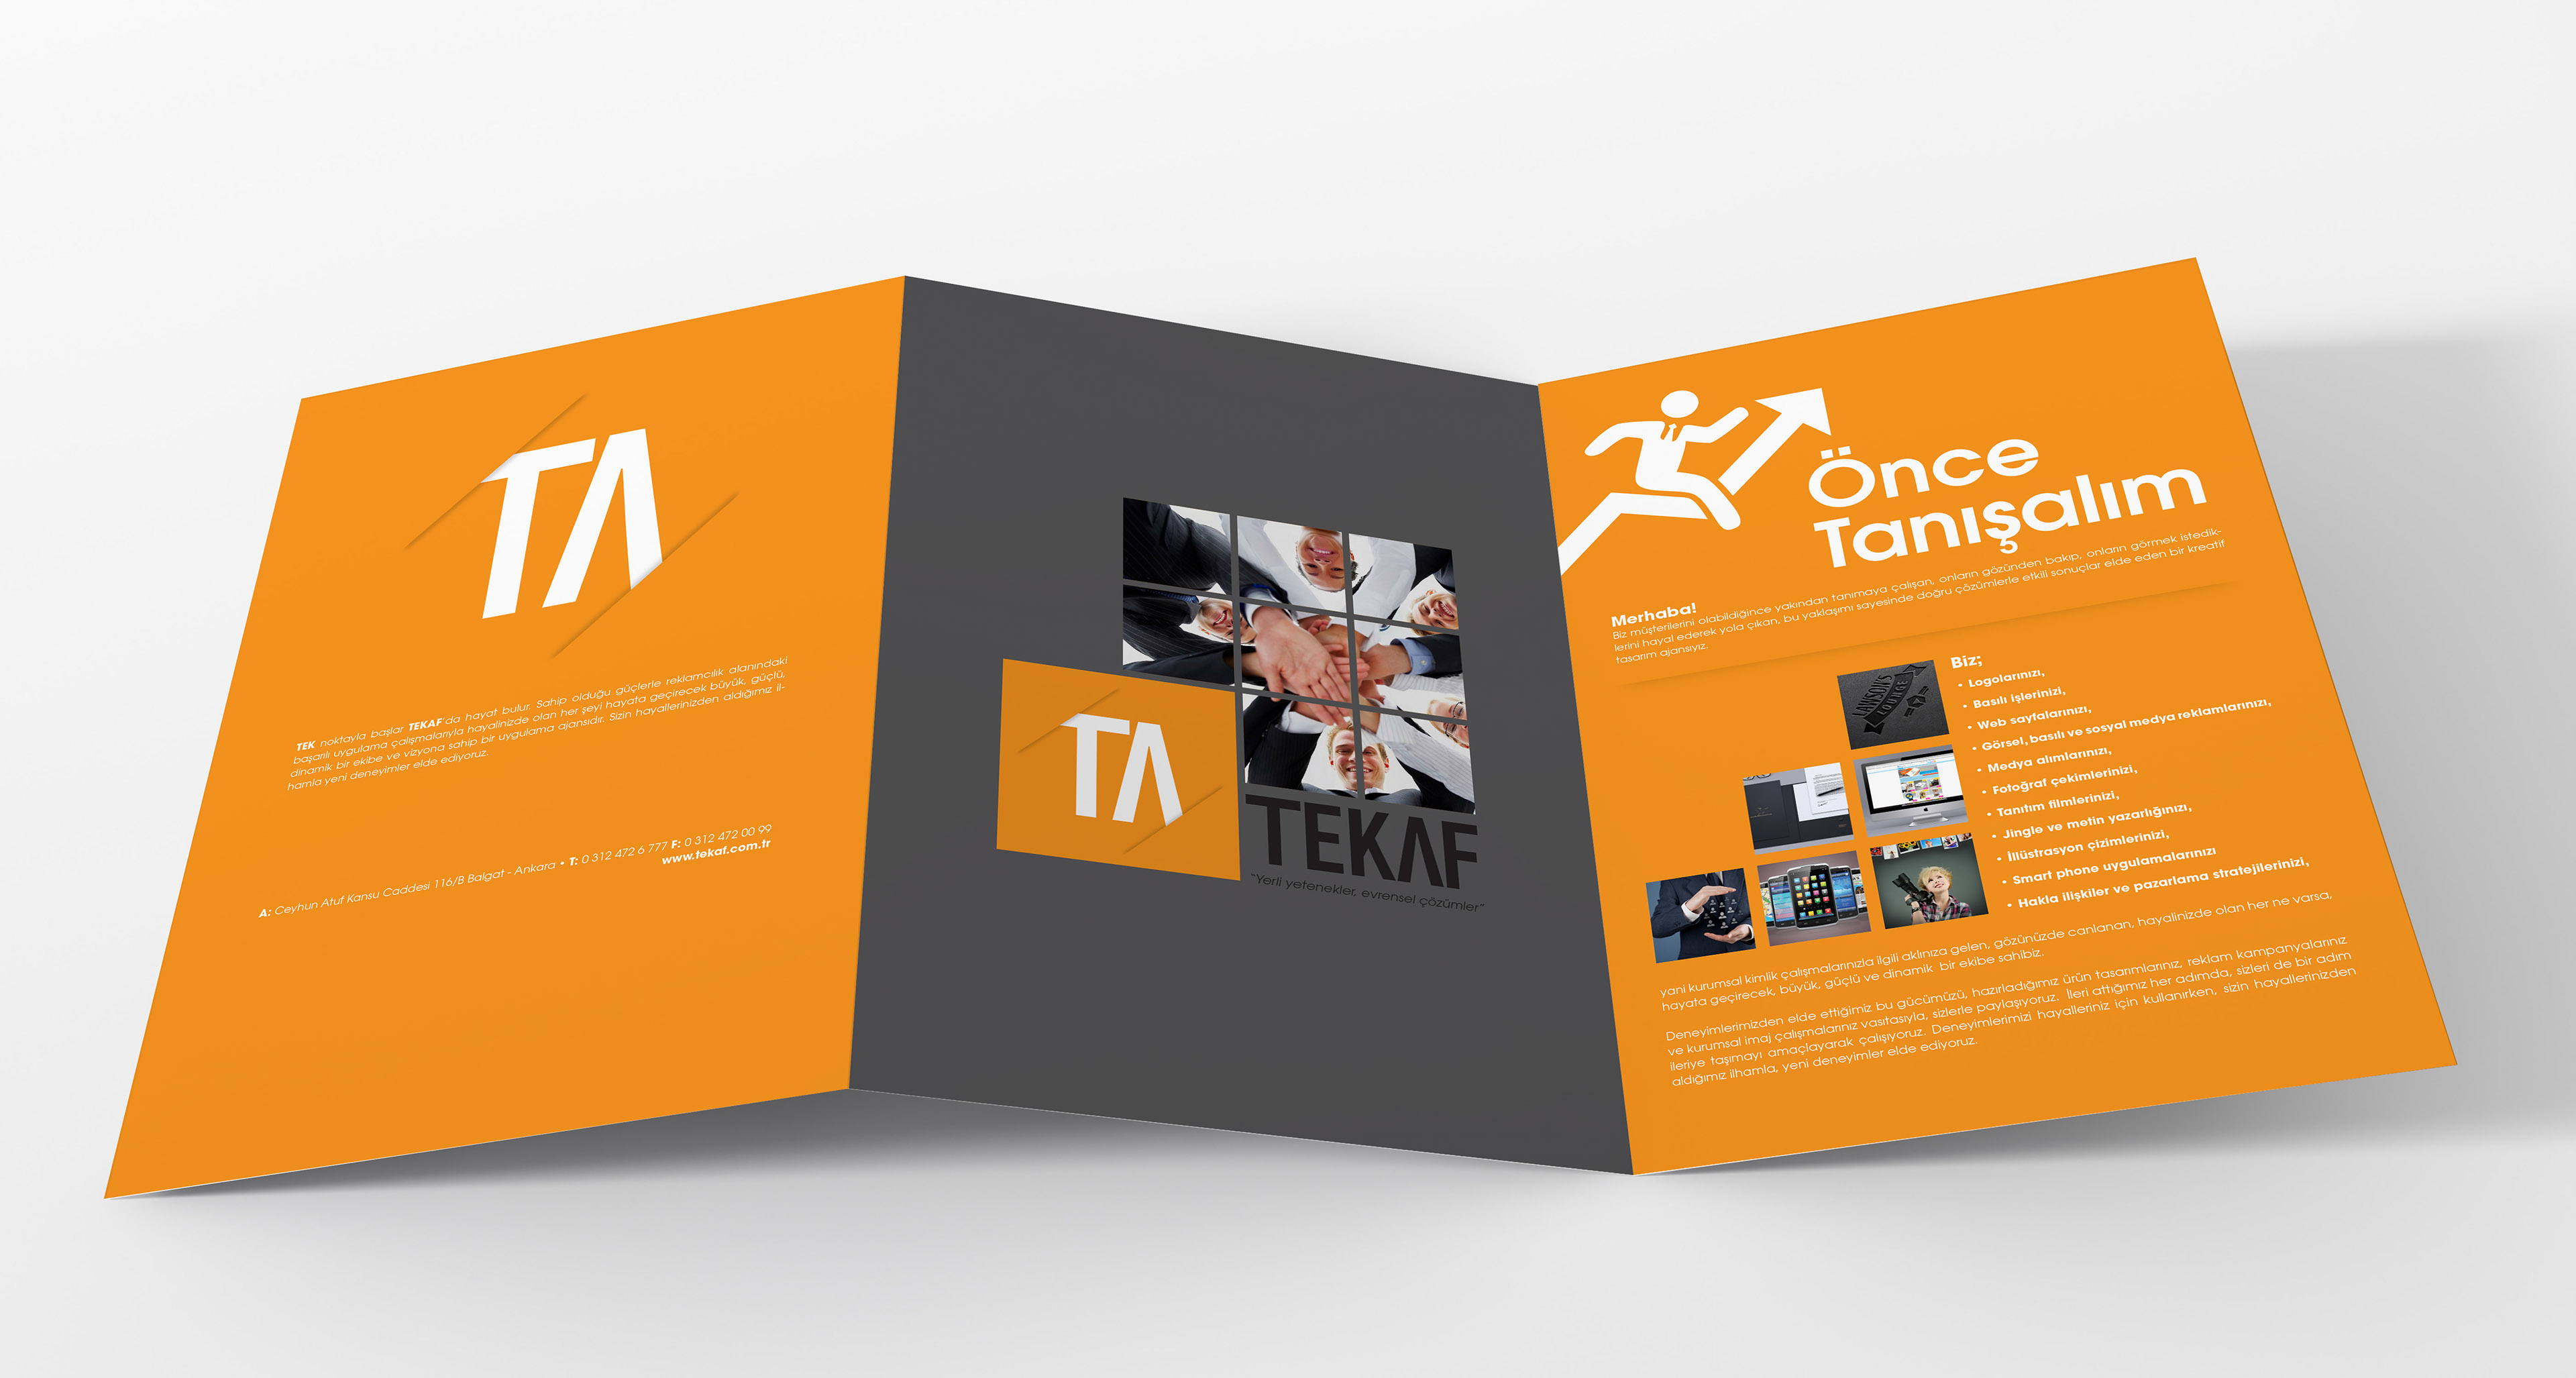 can batim mermer two fold brochure design